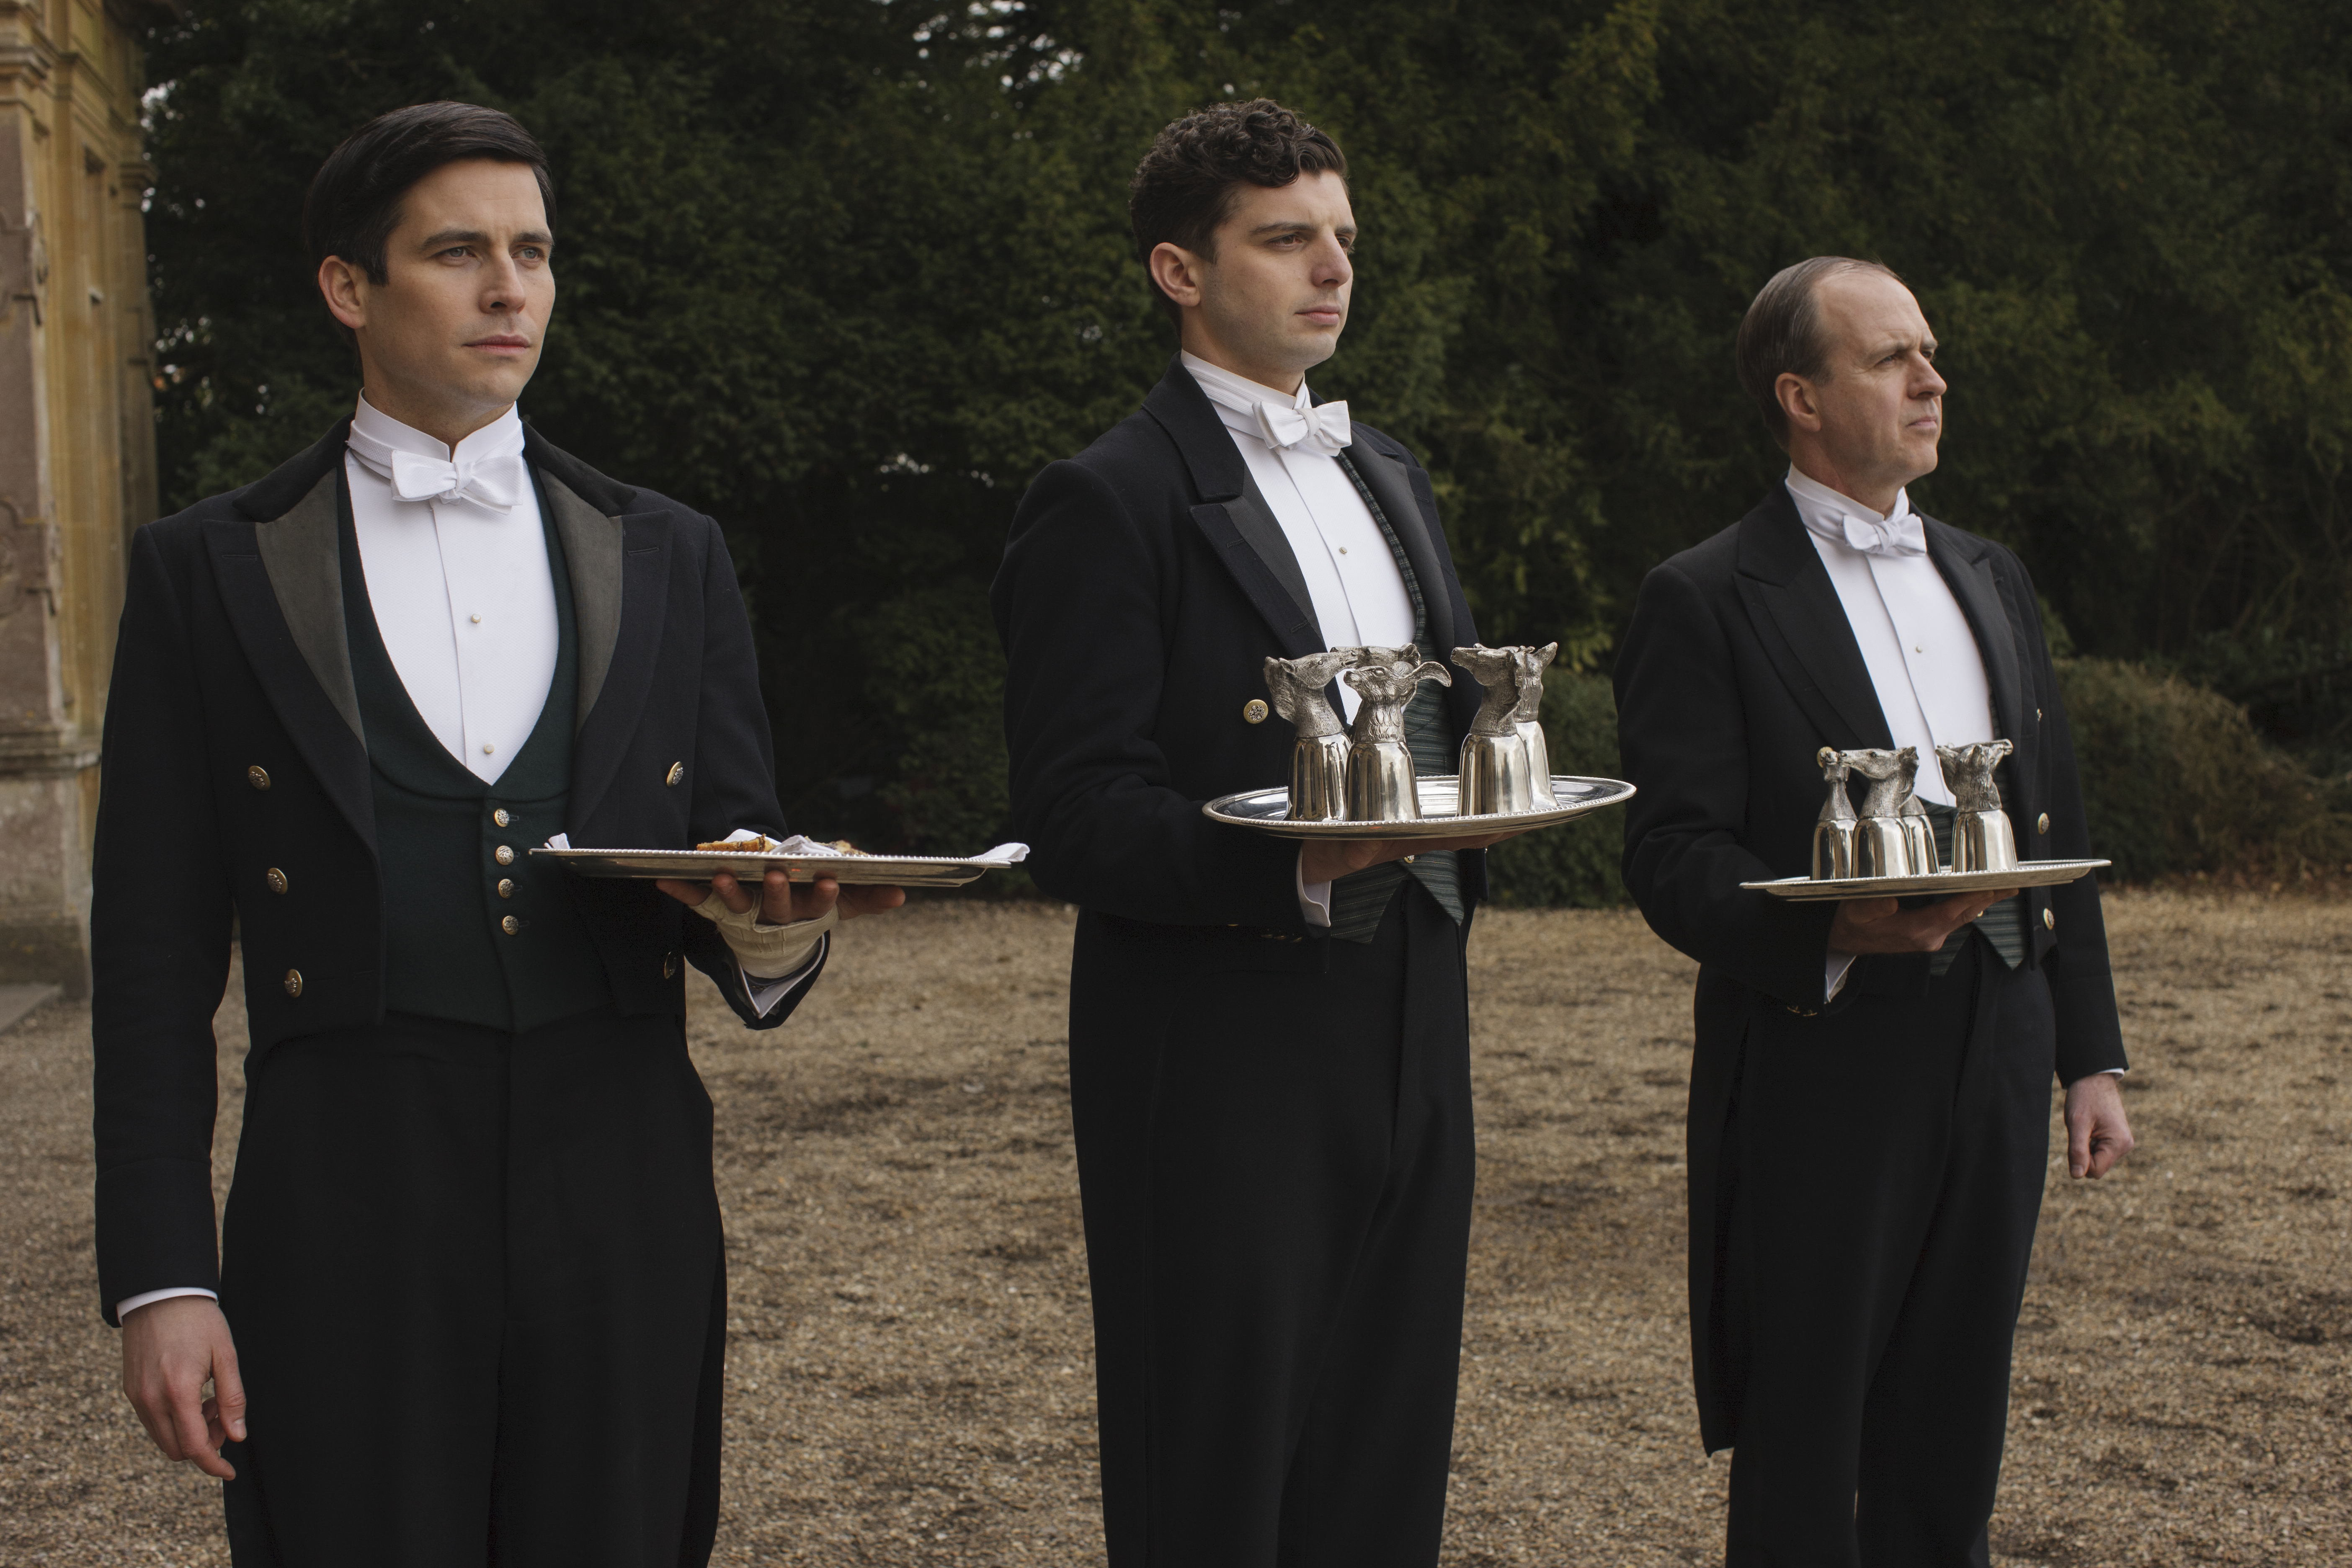 Robert James-Collier as Thomas Barrow, Michael Fox as Andy Parker, and Kevin Doyle as Joseph Molesley.